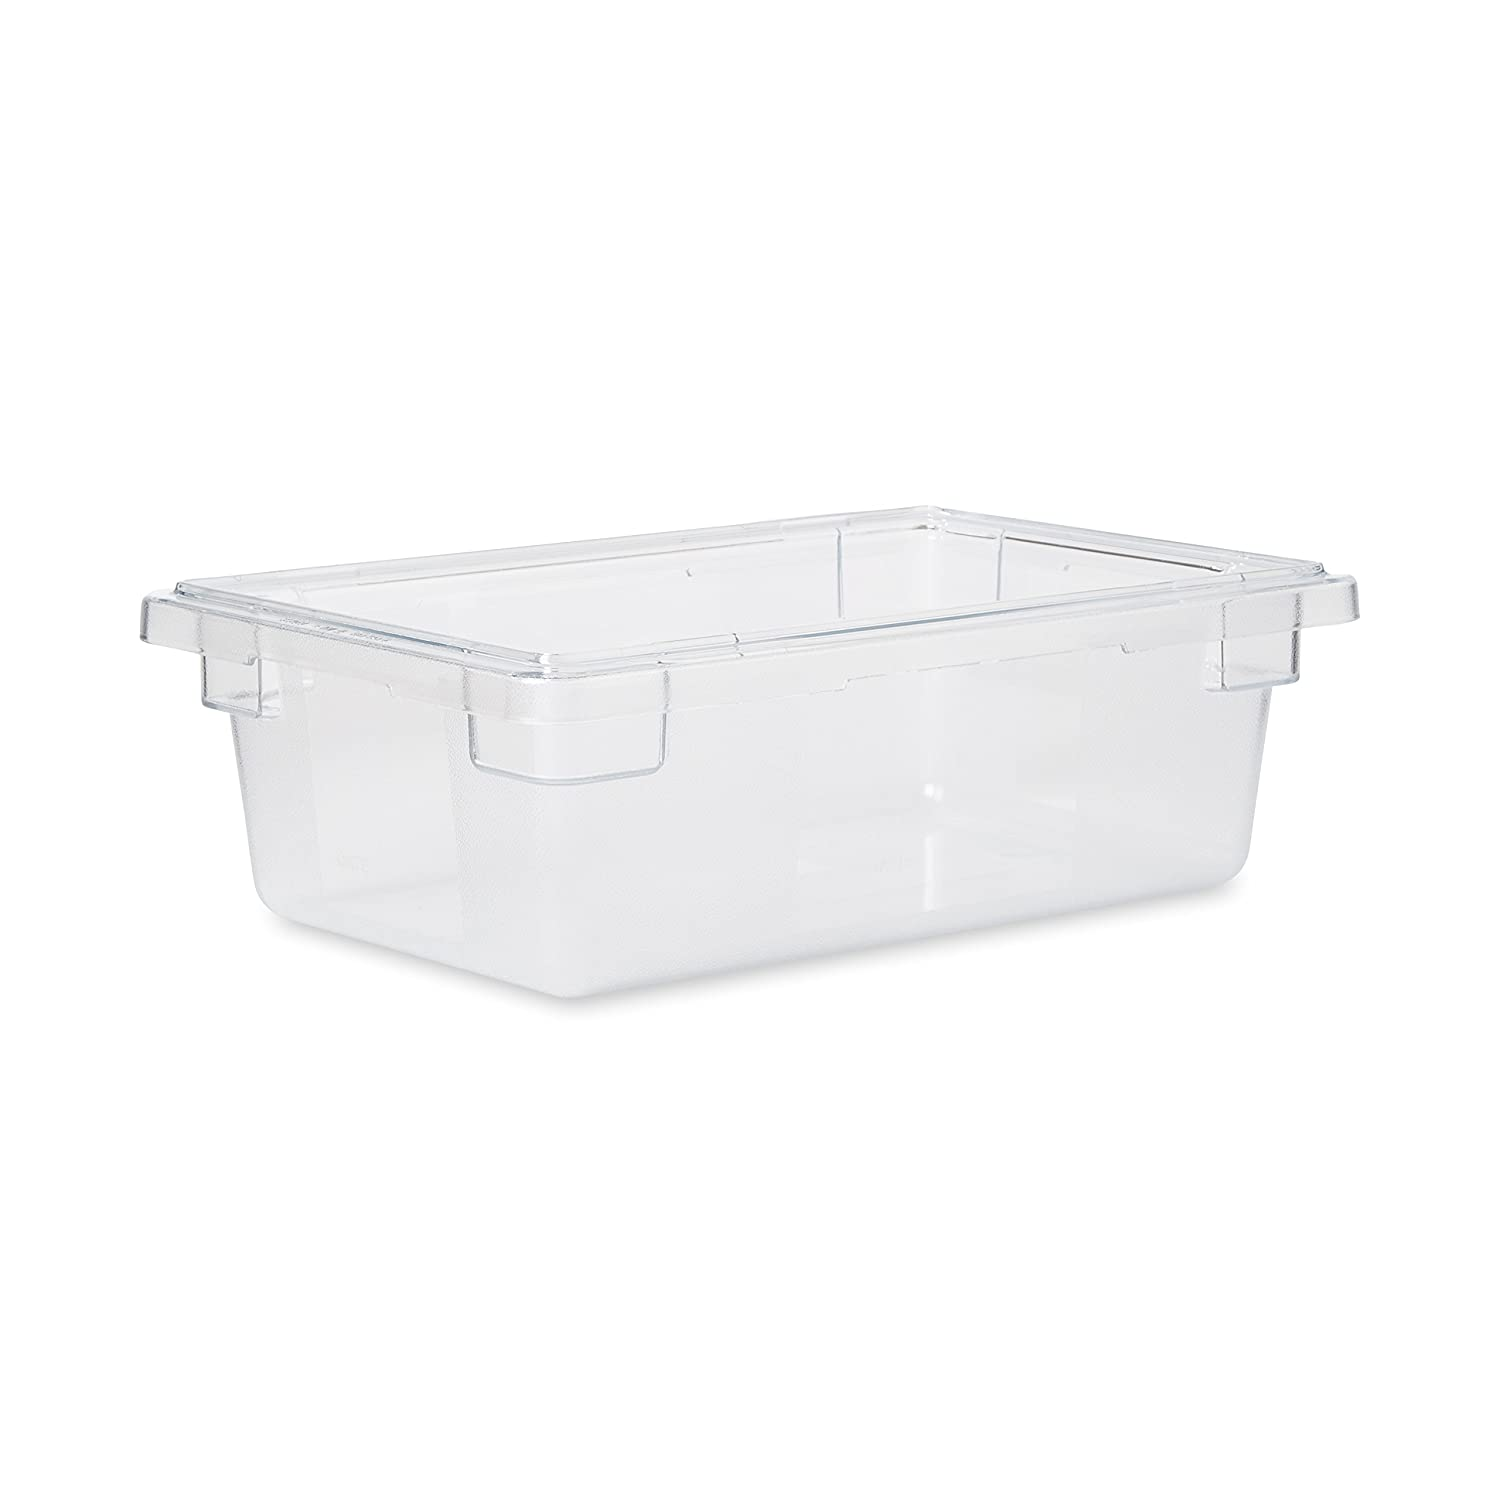 Rubbermaid Commercial Products Food Storage Box/Tote for Restaurant/Kitchen/Cafeteria, 3.5 Gallon, Clear (FG330900CLR)